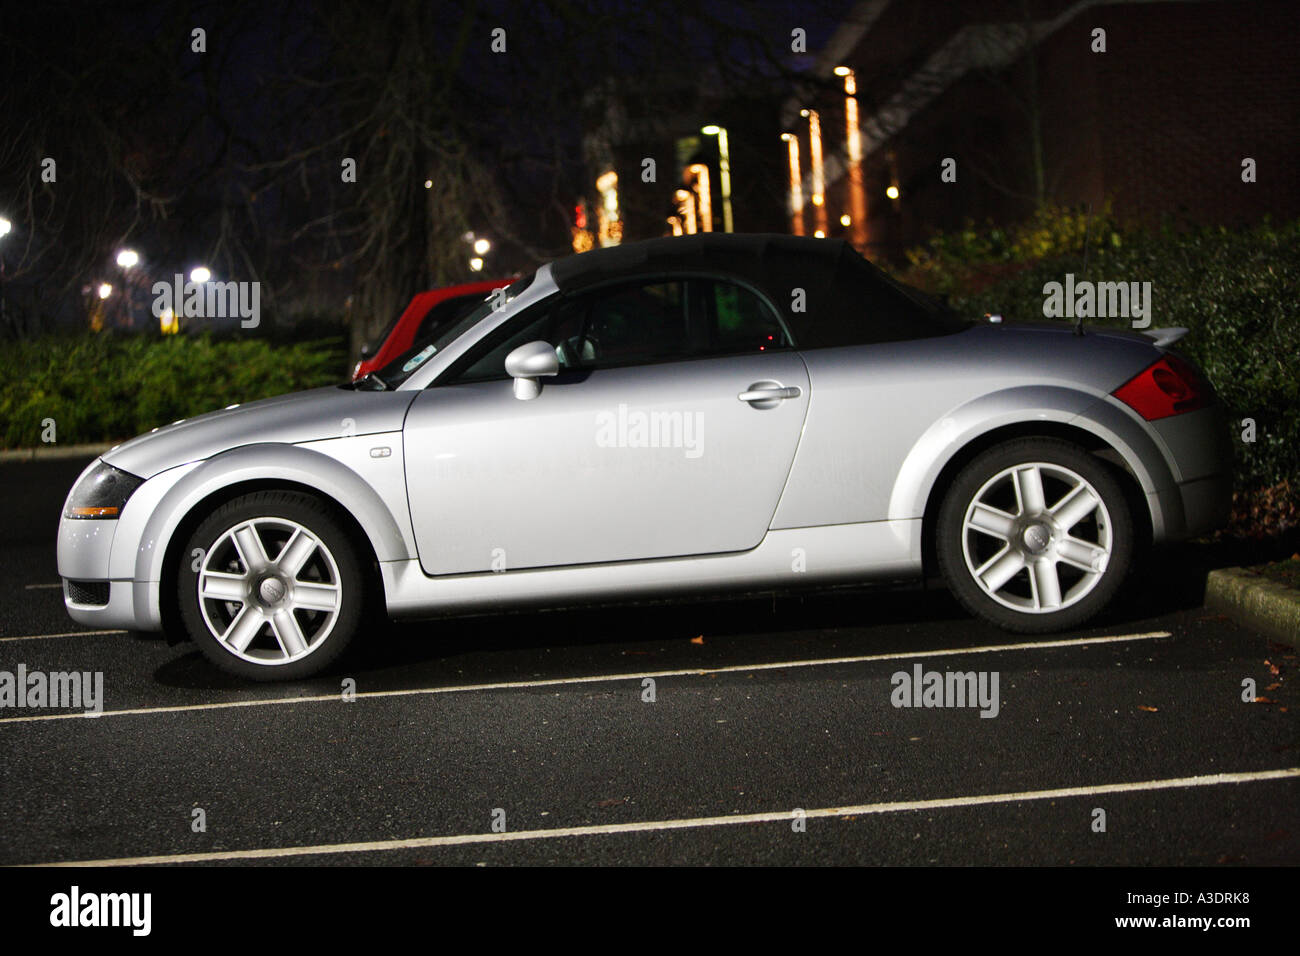 audi, tt, convertible roadster softtop silver, front, 3, 4, silver, 2003, model night dusk Stock Photo